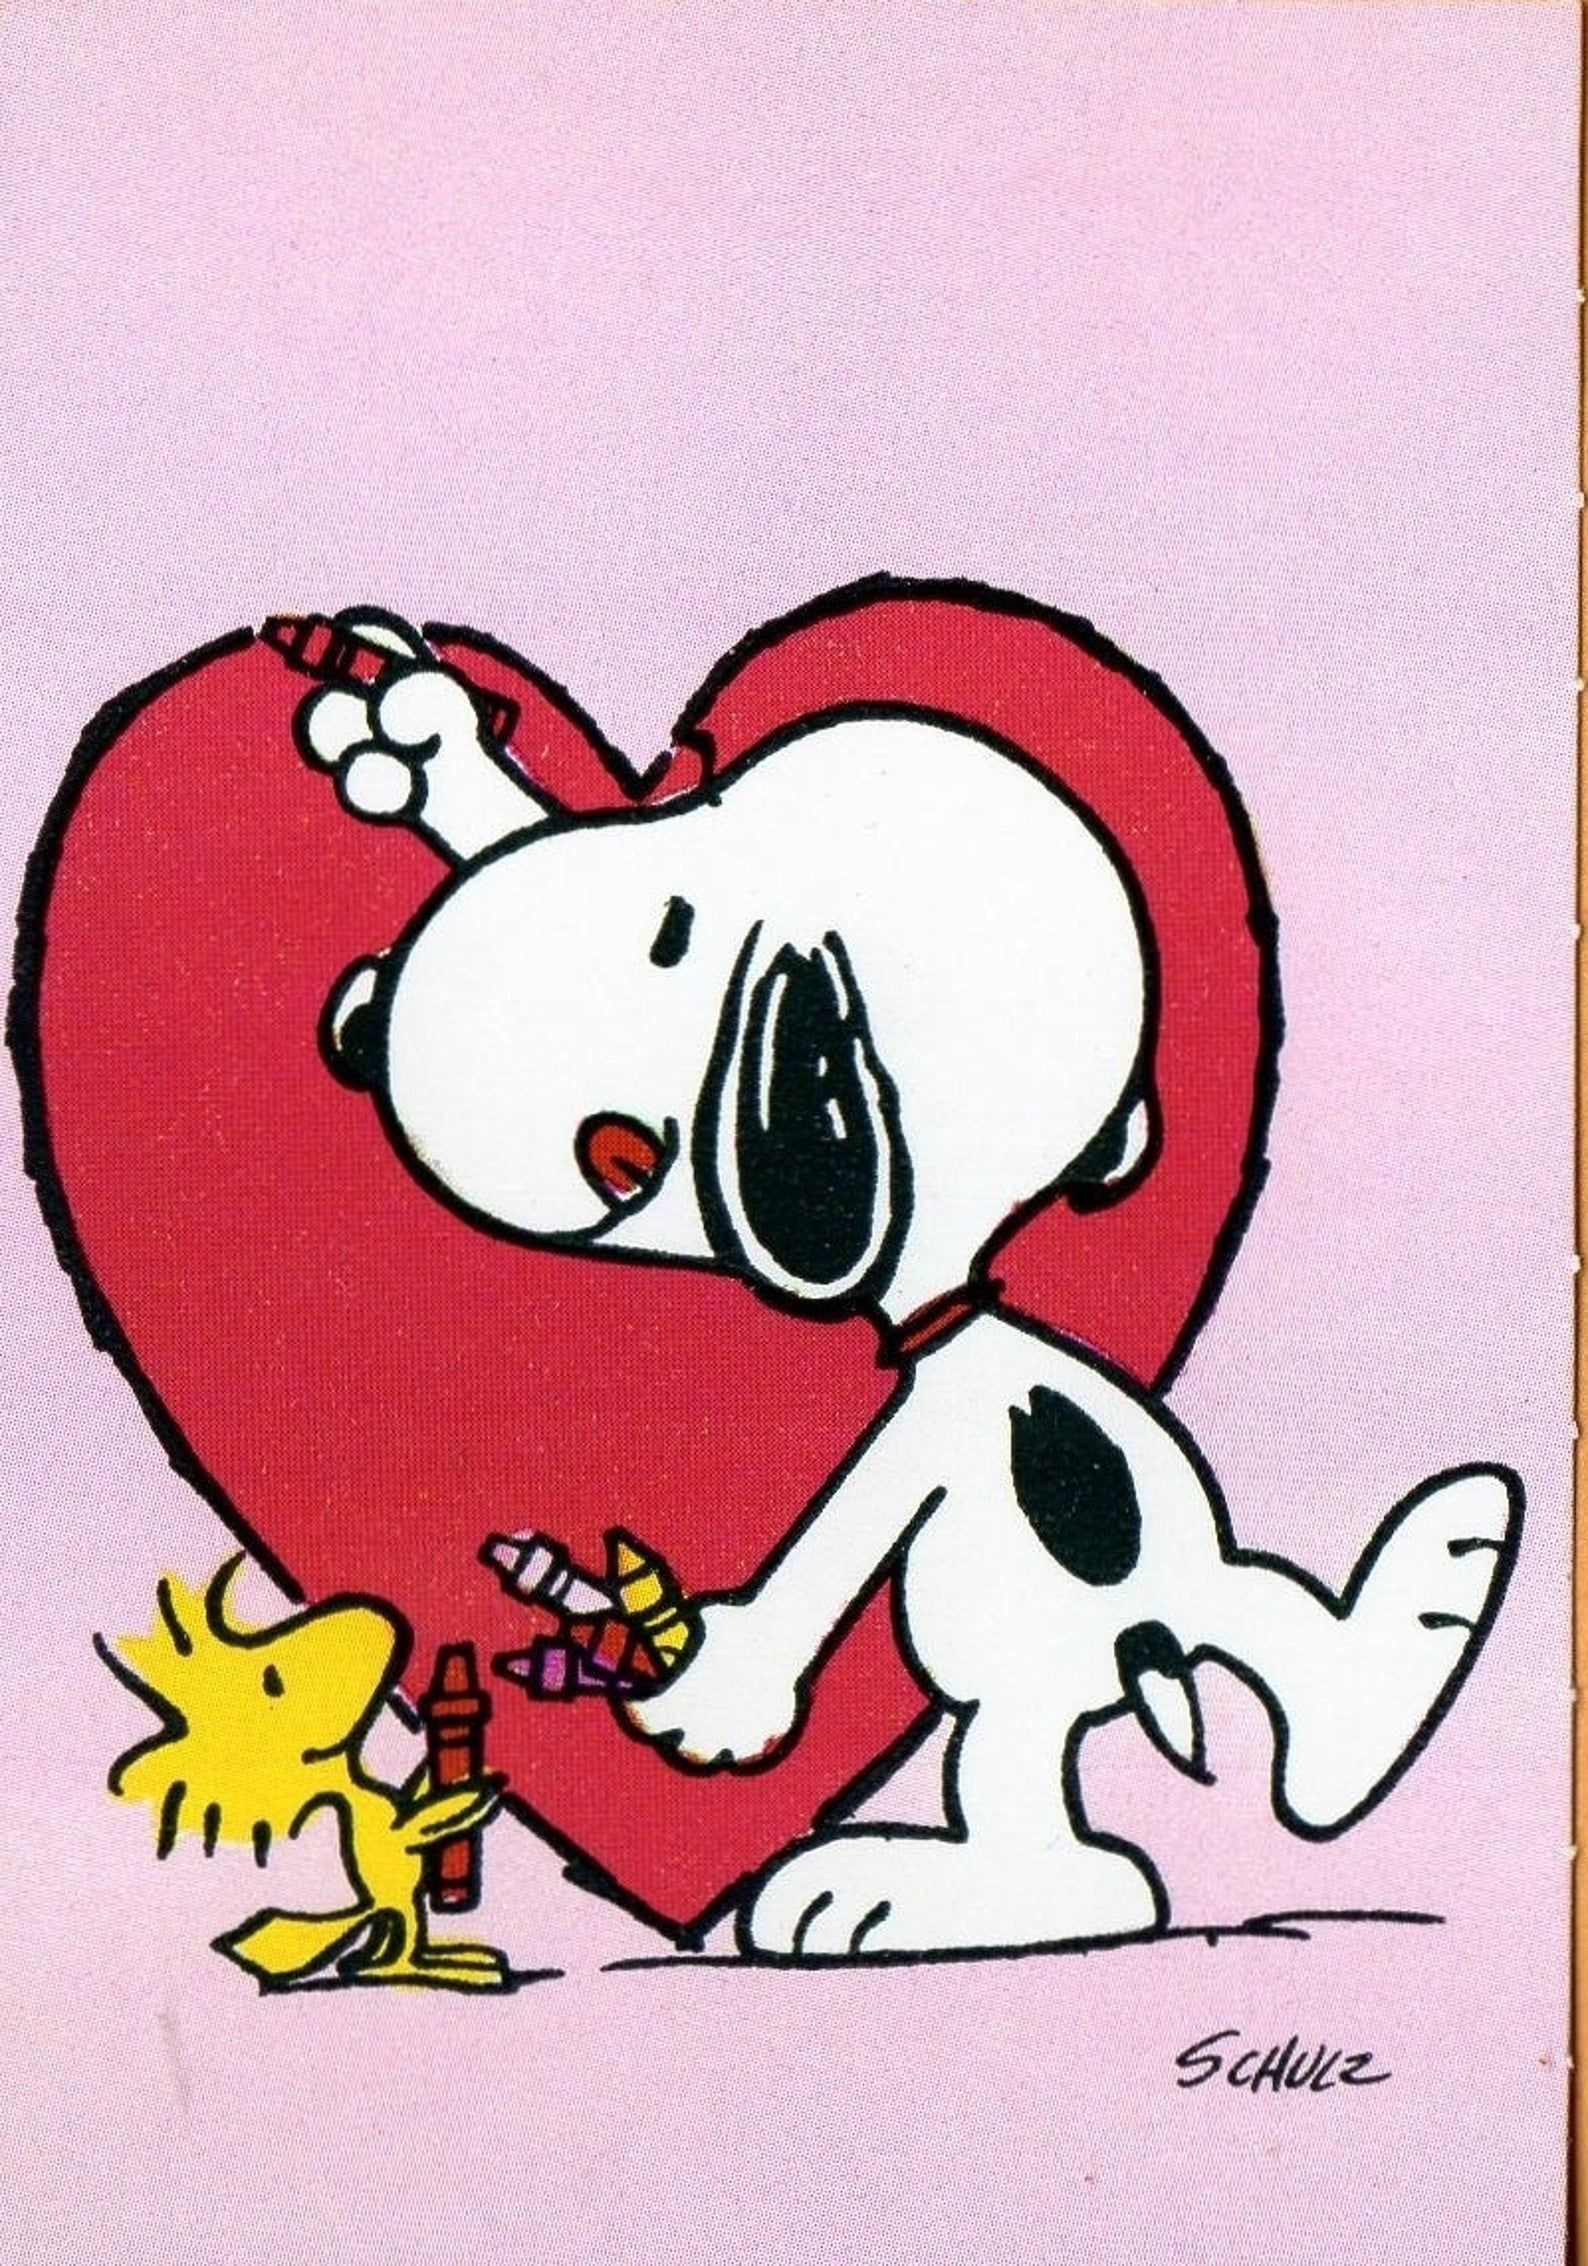 Vintage Peanuts Valentine Card Woodstock Hands Snoopy Crayons Etsy In Snoopy Wallpaper Snoopy Love Snoopy Pictures